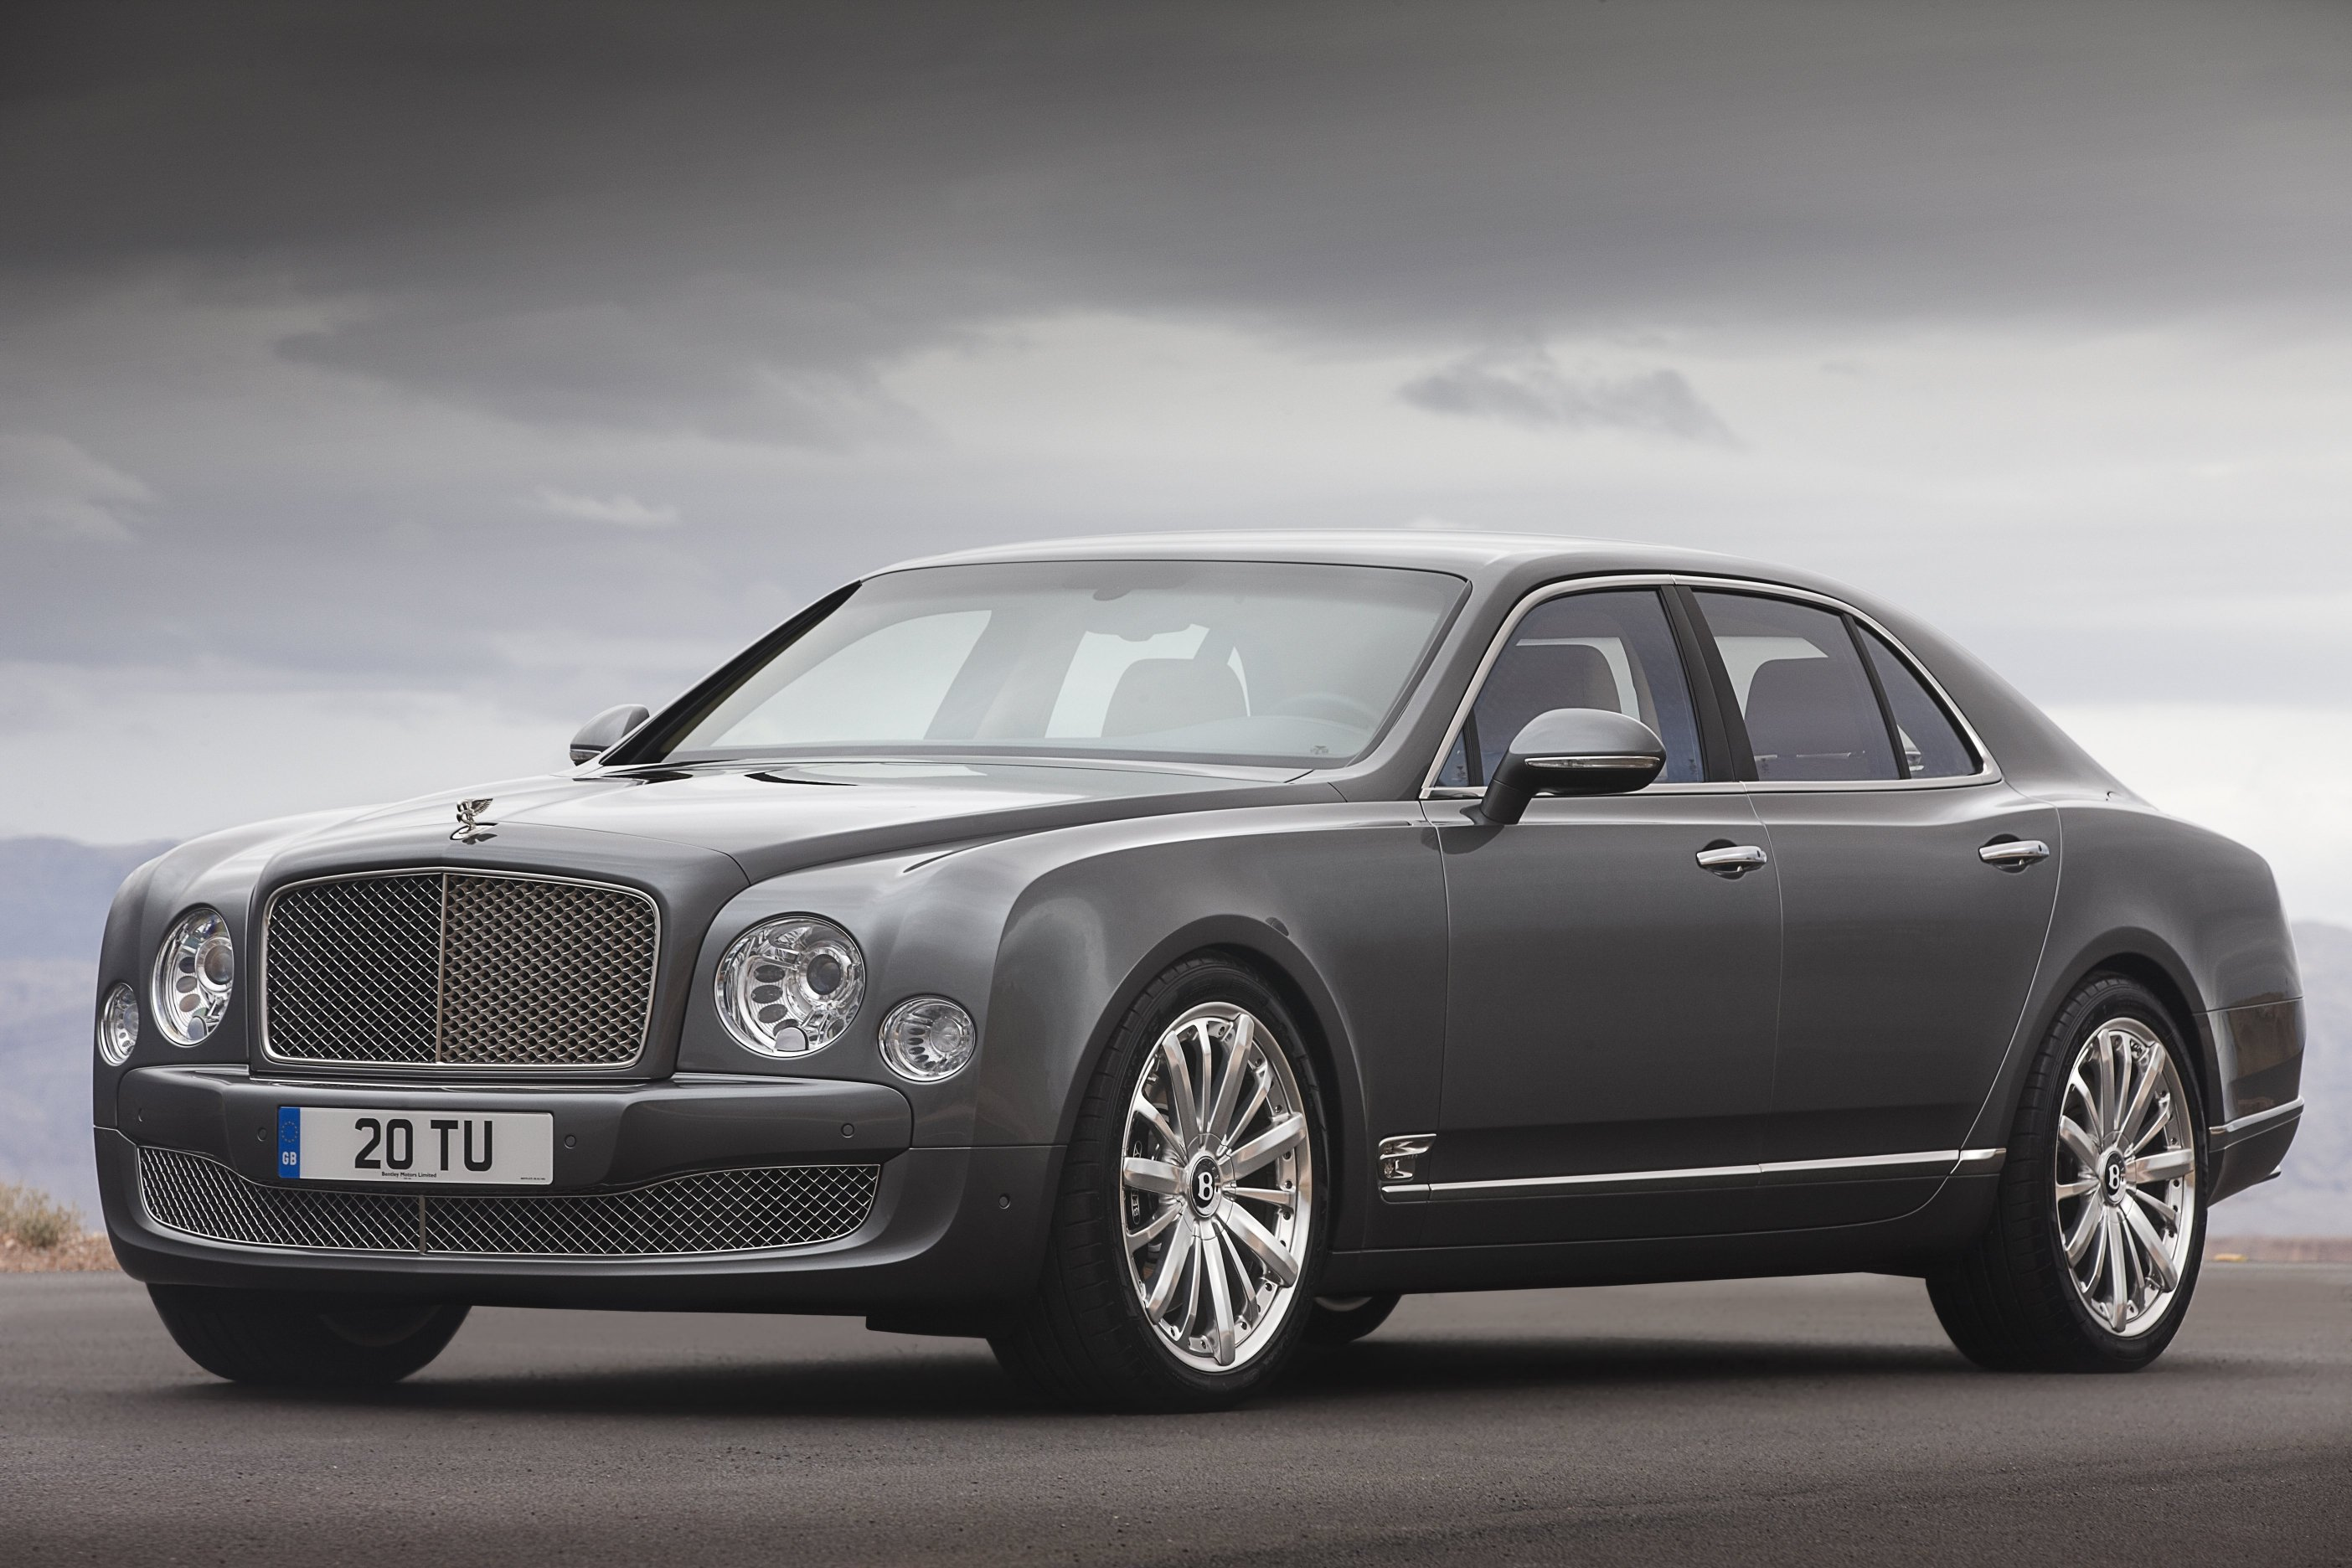 2013 bentley mulsanne review and news motorauthority. Black Bedroom Furniture Sets. Home Design Ideas